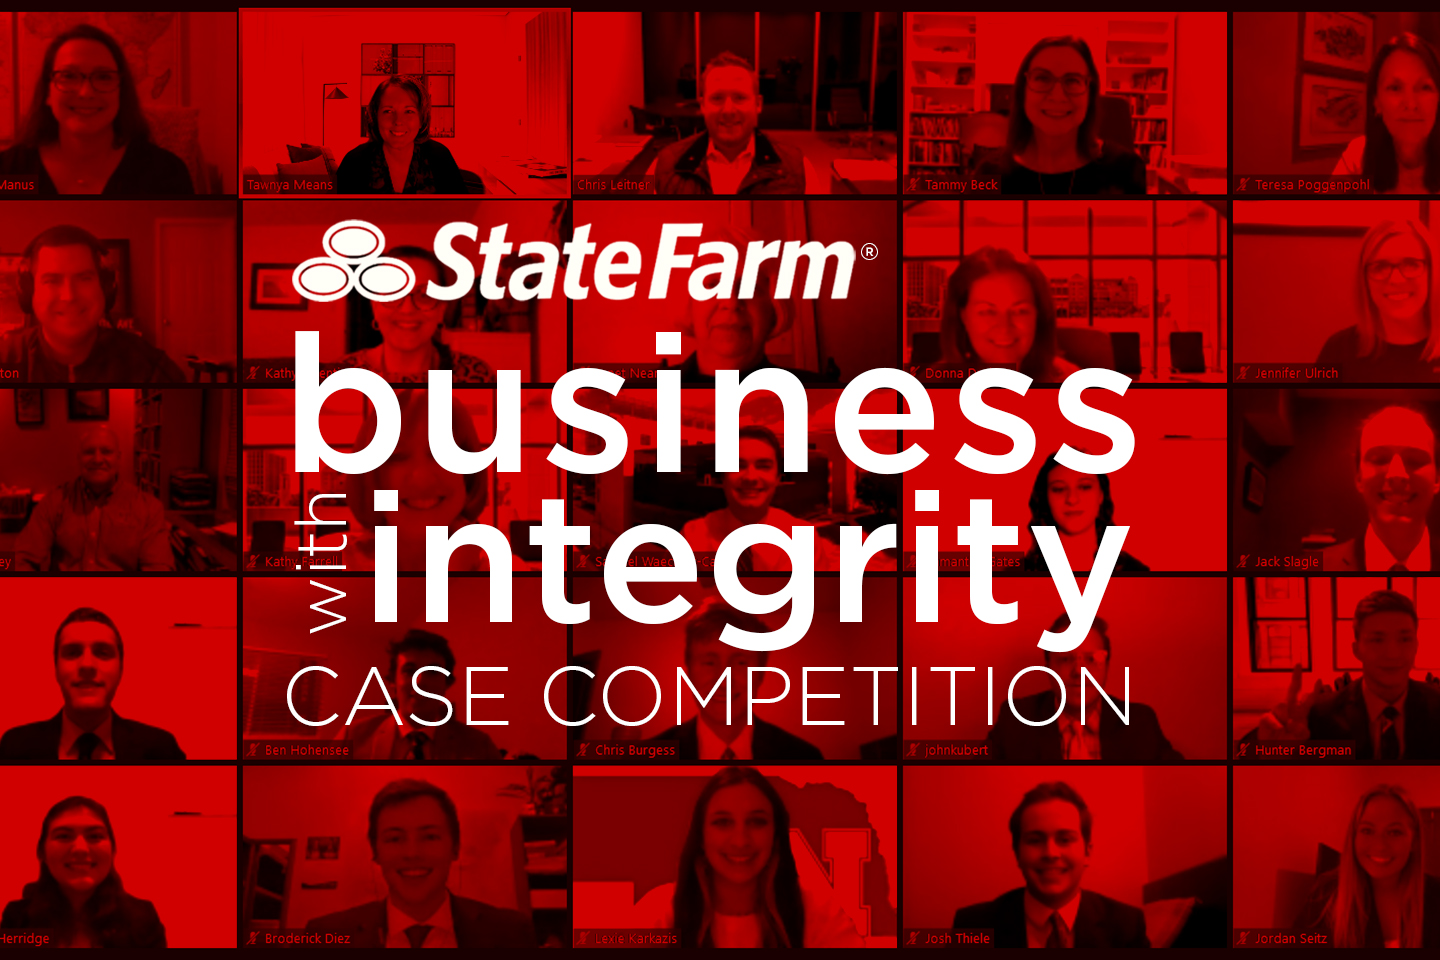 Case Competition Highlights Importance of Ethics